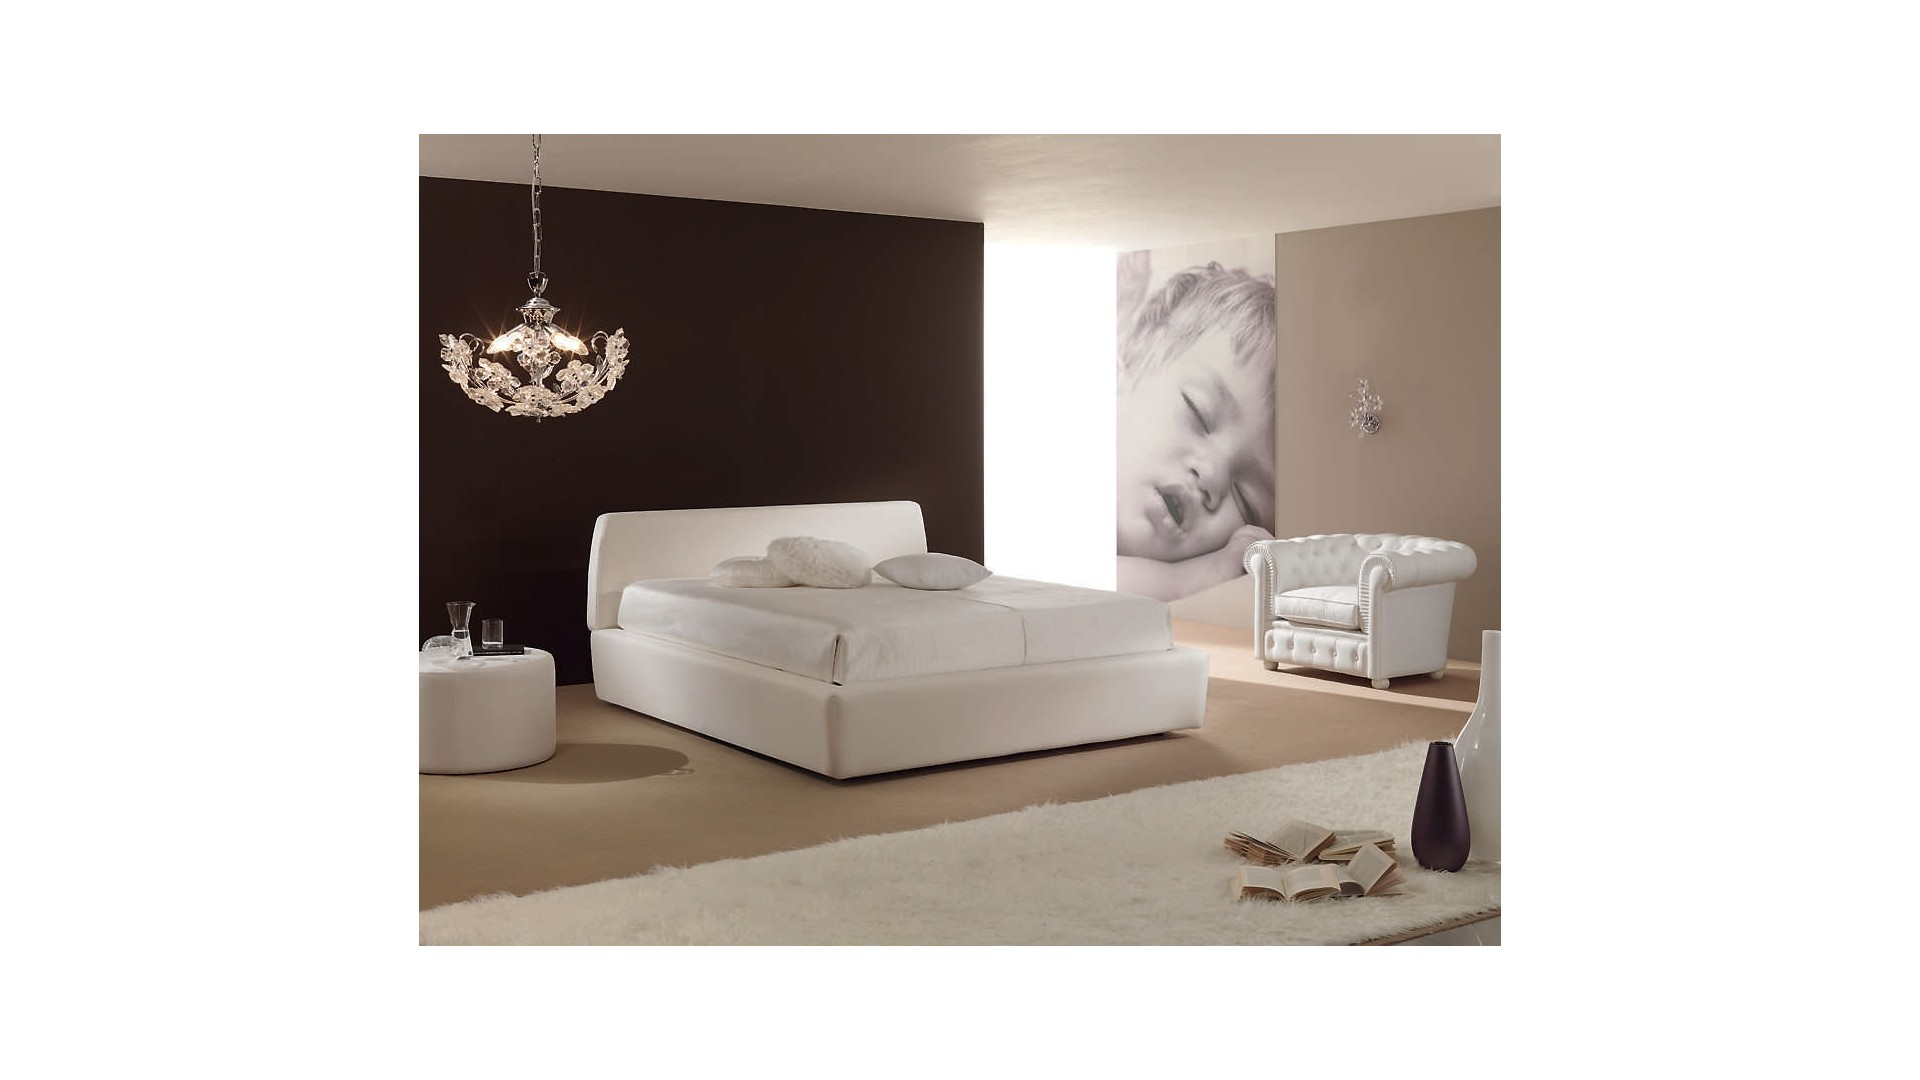 lit 2 places pour une chambre adulte distingu e piermaria so nuit. Black Bedroom Furniture Sets. Home Design Ideas